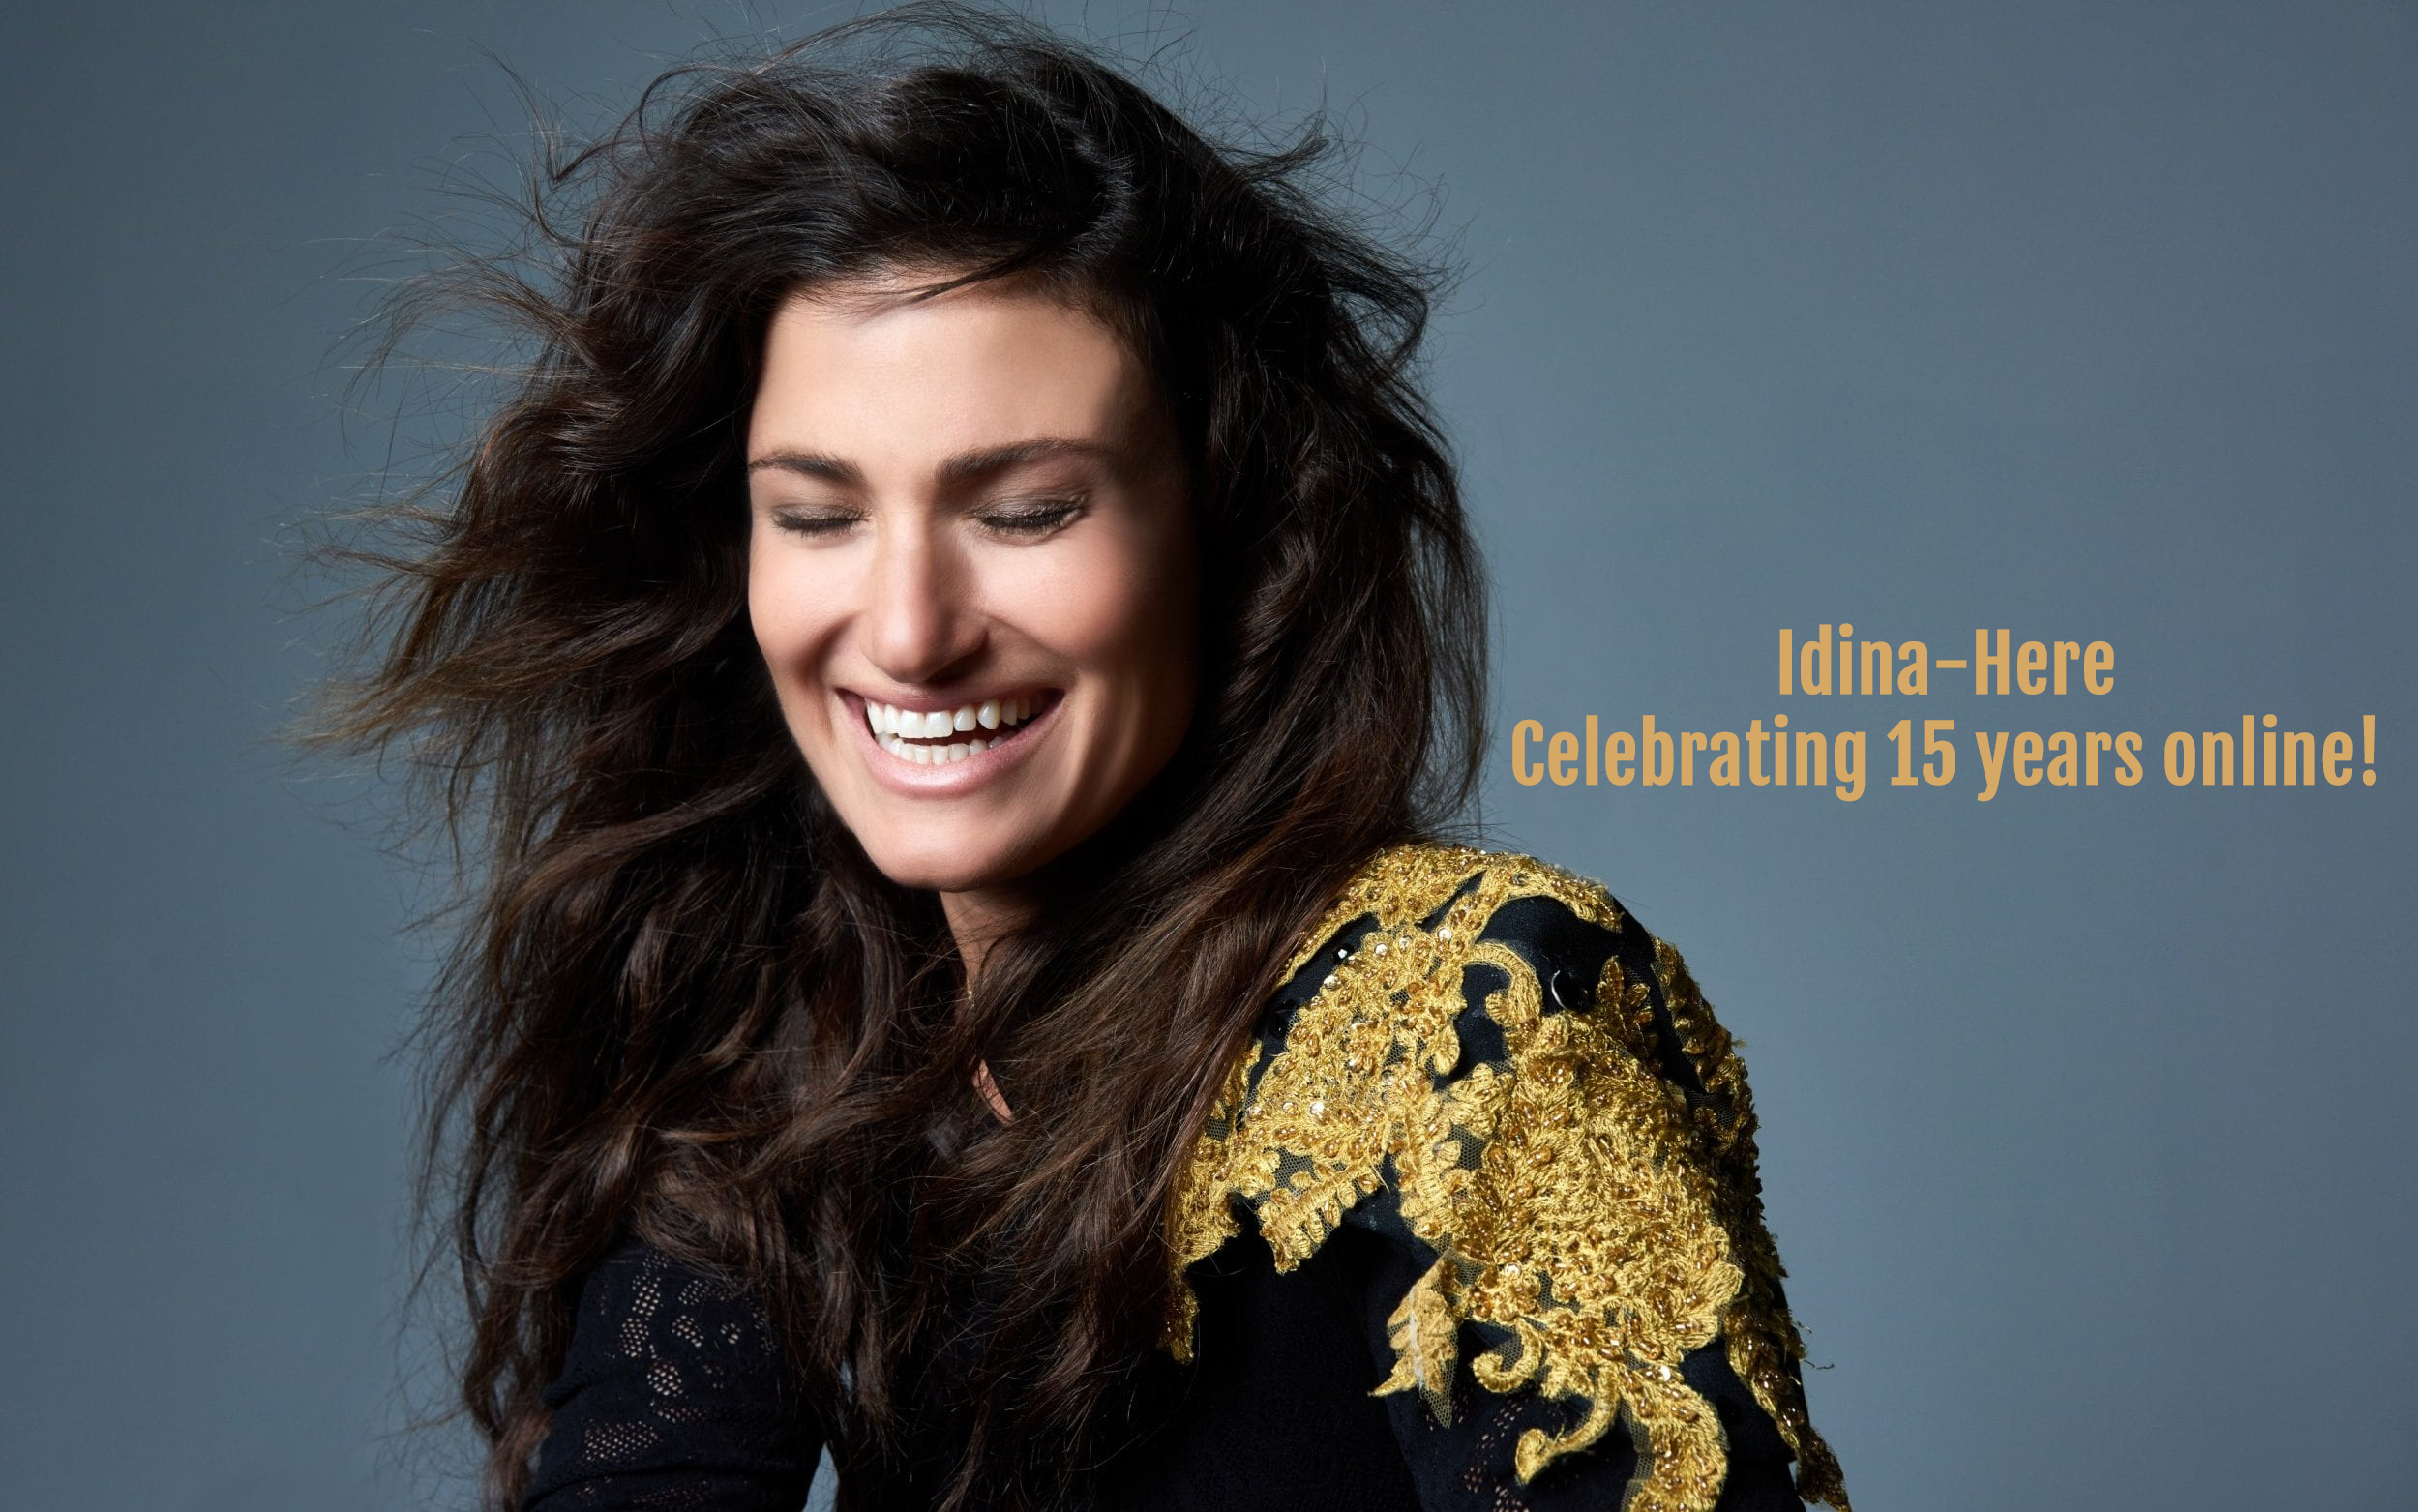 Idina-Here is 15!